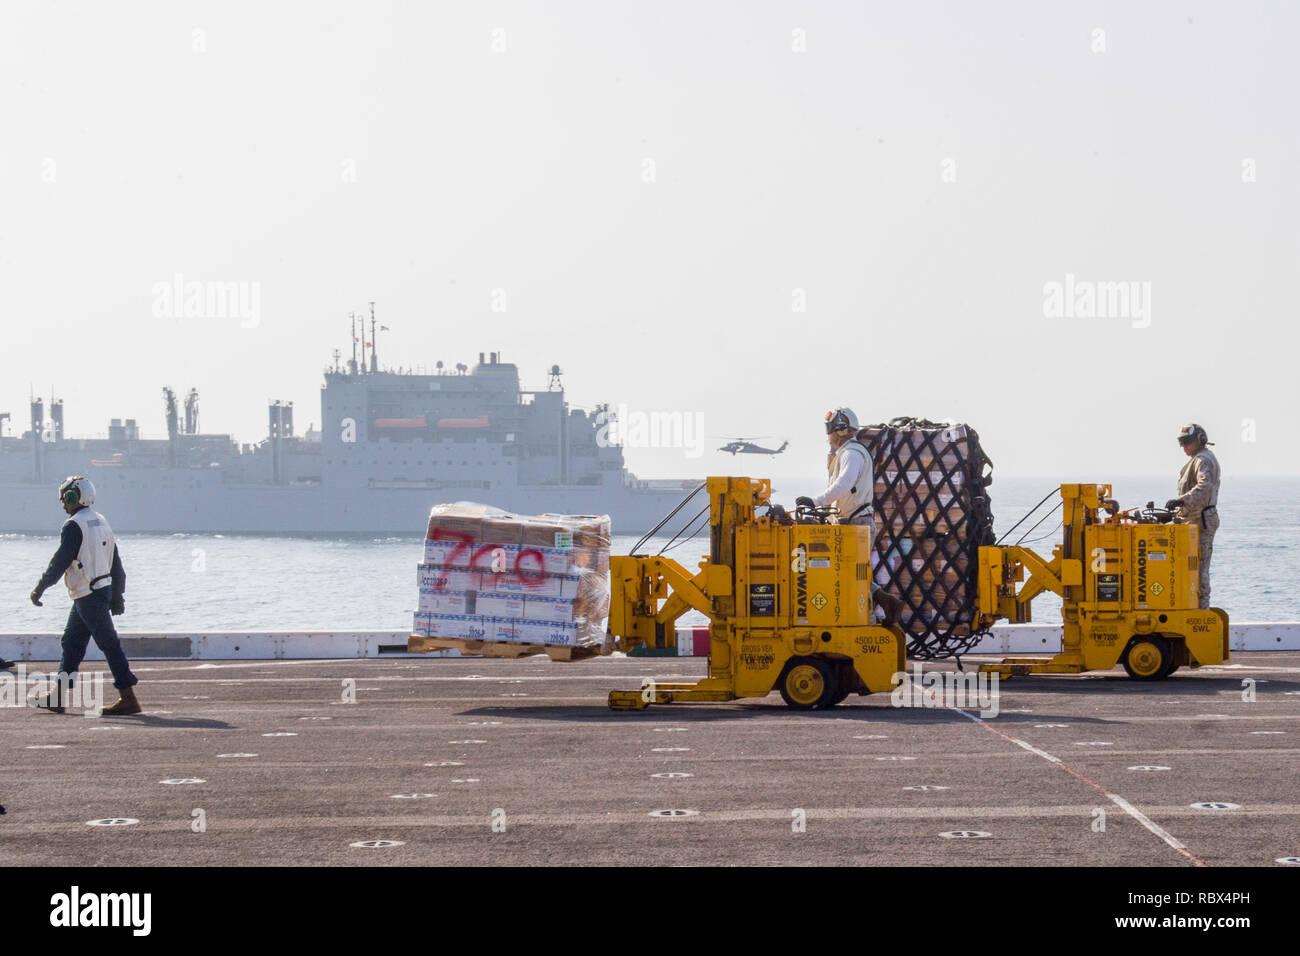 190107-N-PH222-1147 ARABIAN SEA (Jan. 7, 2018) Marines assigned to the 13th Marine Expeditionary Unit (MEU) transport cargo on the flight deck of the San Antonio-class amphibious transport dock ship USS Anchorage (LPD 23) during a vertical replenishment with the dry cargo and ammunition ship USNS Alan Shepard (T-AKE-3), while on a deployment of the Essex Amphibious Ready Group (ARG) and 13th MEU. The Essex ARG/13th MEU is flexible and persistent Navy-Marine Corps team deployed to the U.S. 5th Fleet area of operations in support of naval operations to ensure maritime stability and security in t - Stock Image